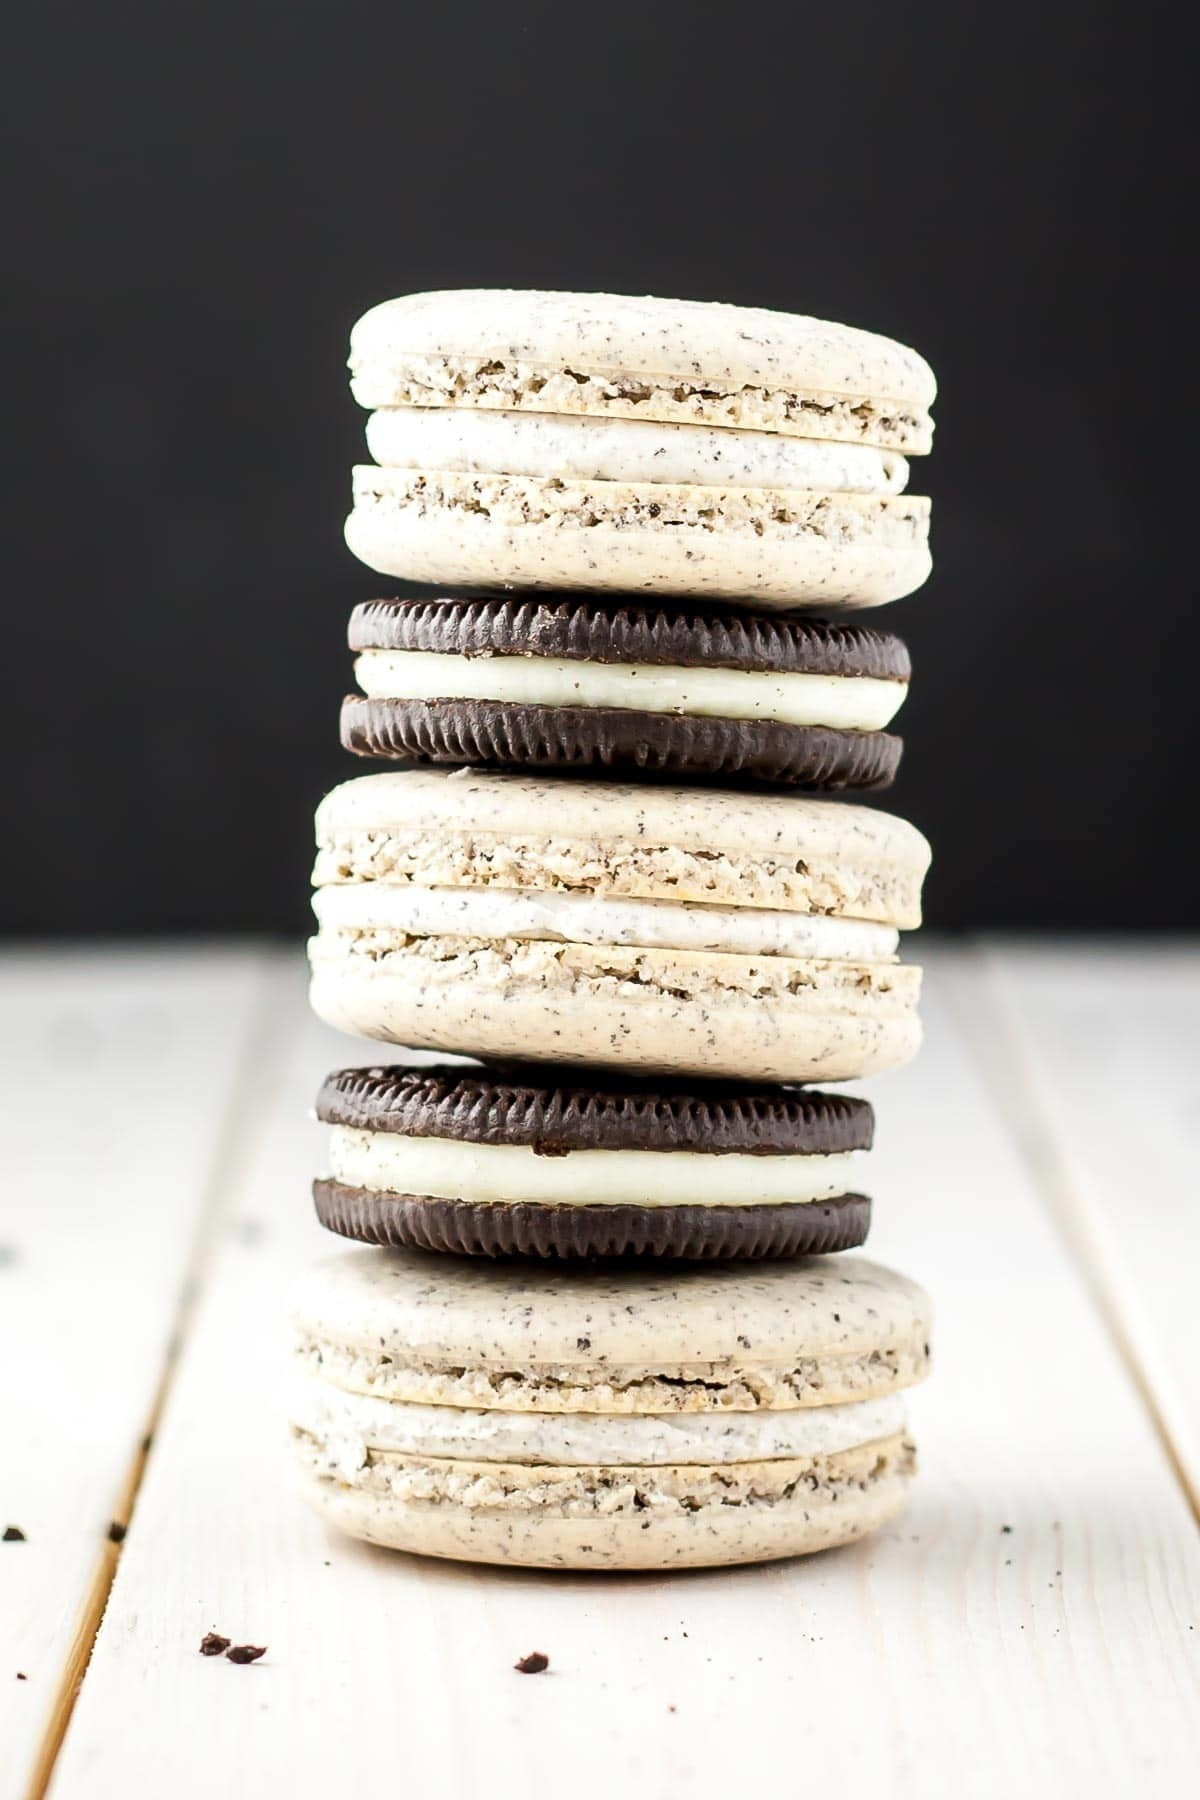 Oreo Macarons  -  The most time consuming part of this recipe is separating the Oreo filling from the cookies, but once you get past that you're golden. Get the recipe .